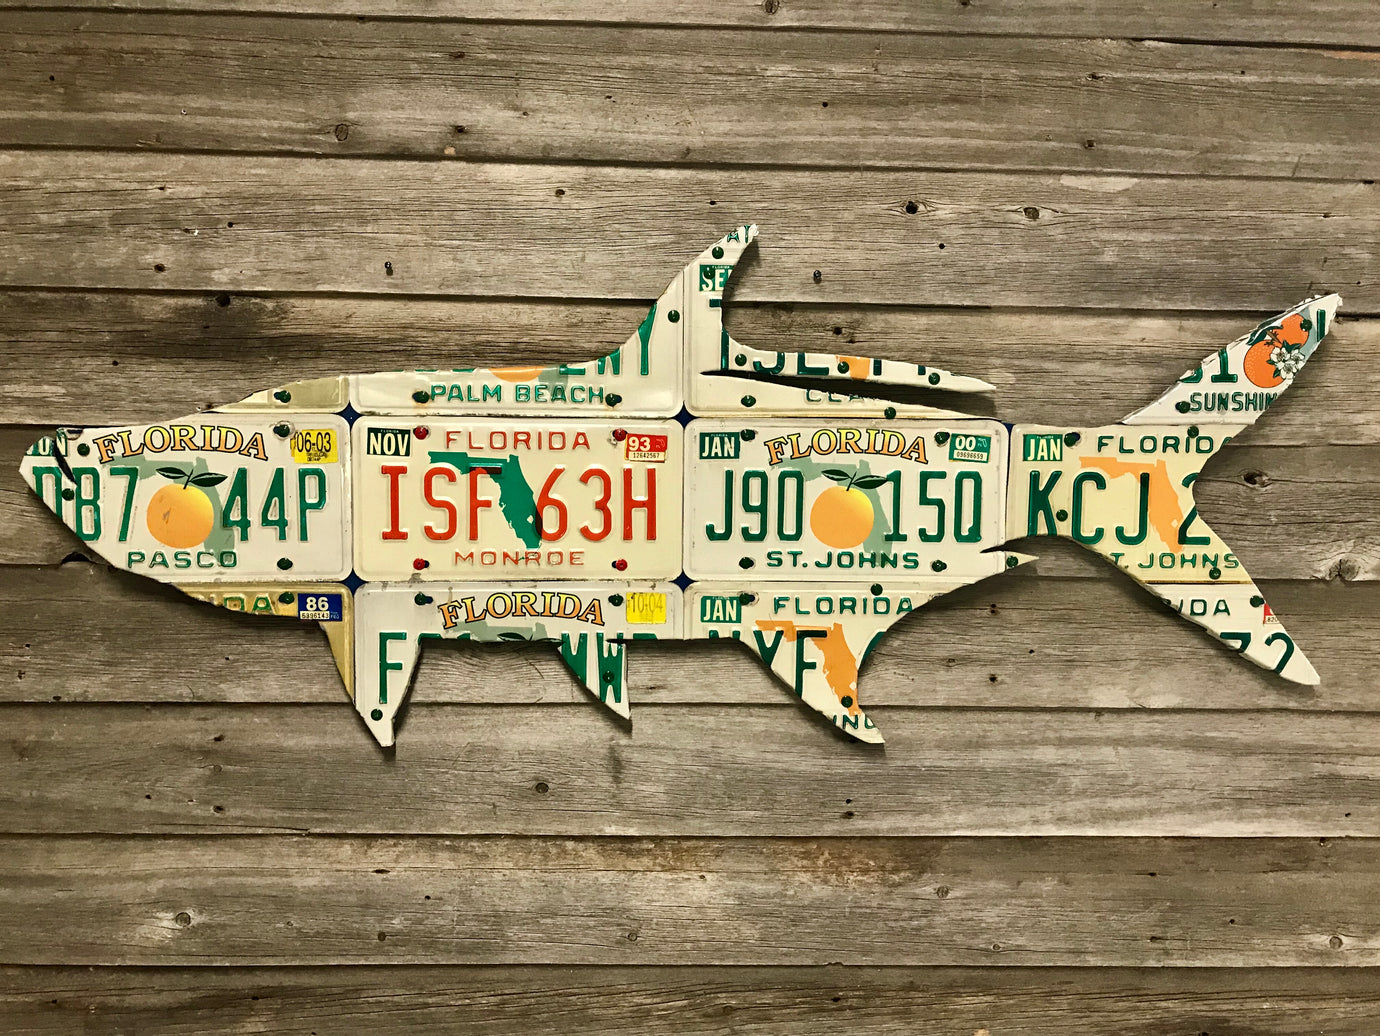 Florida Orange Tarpon License Plate Art